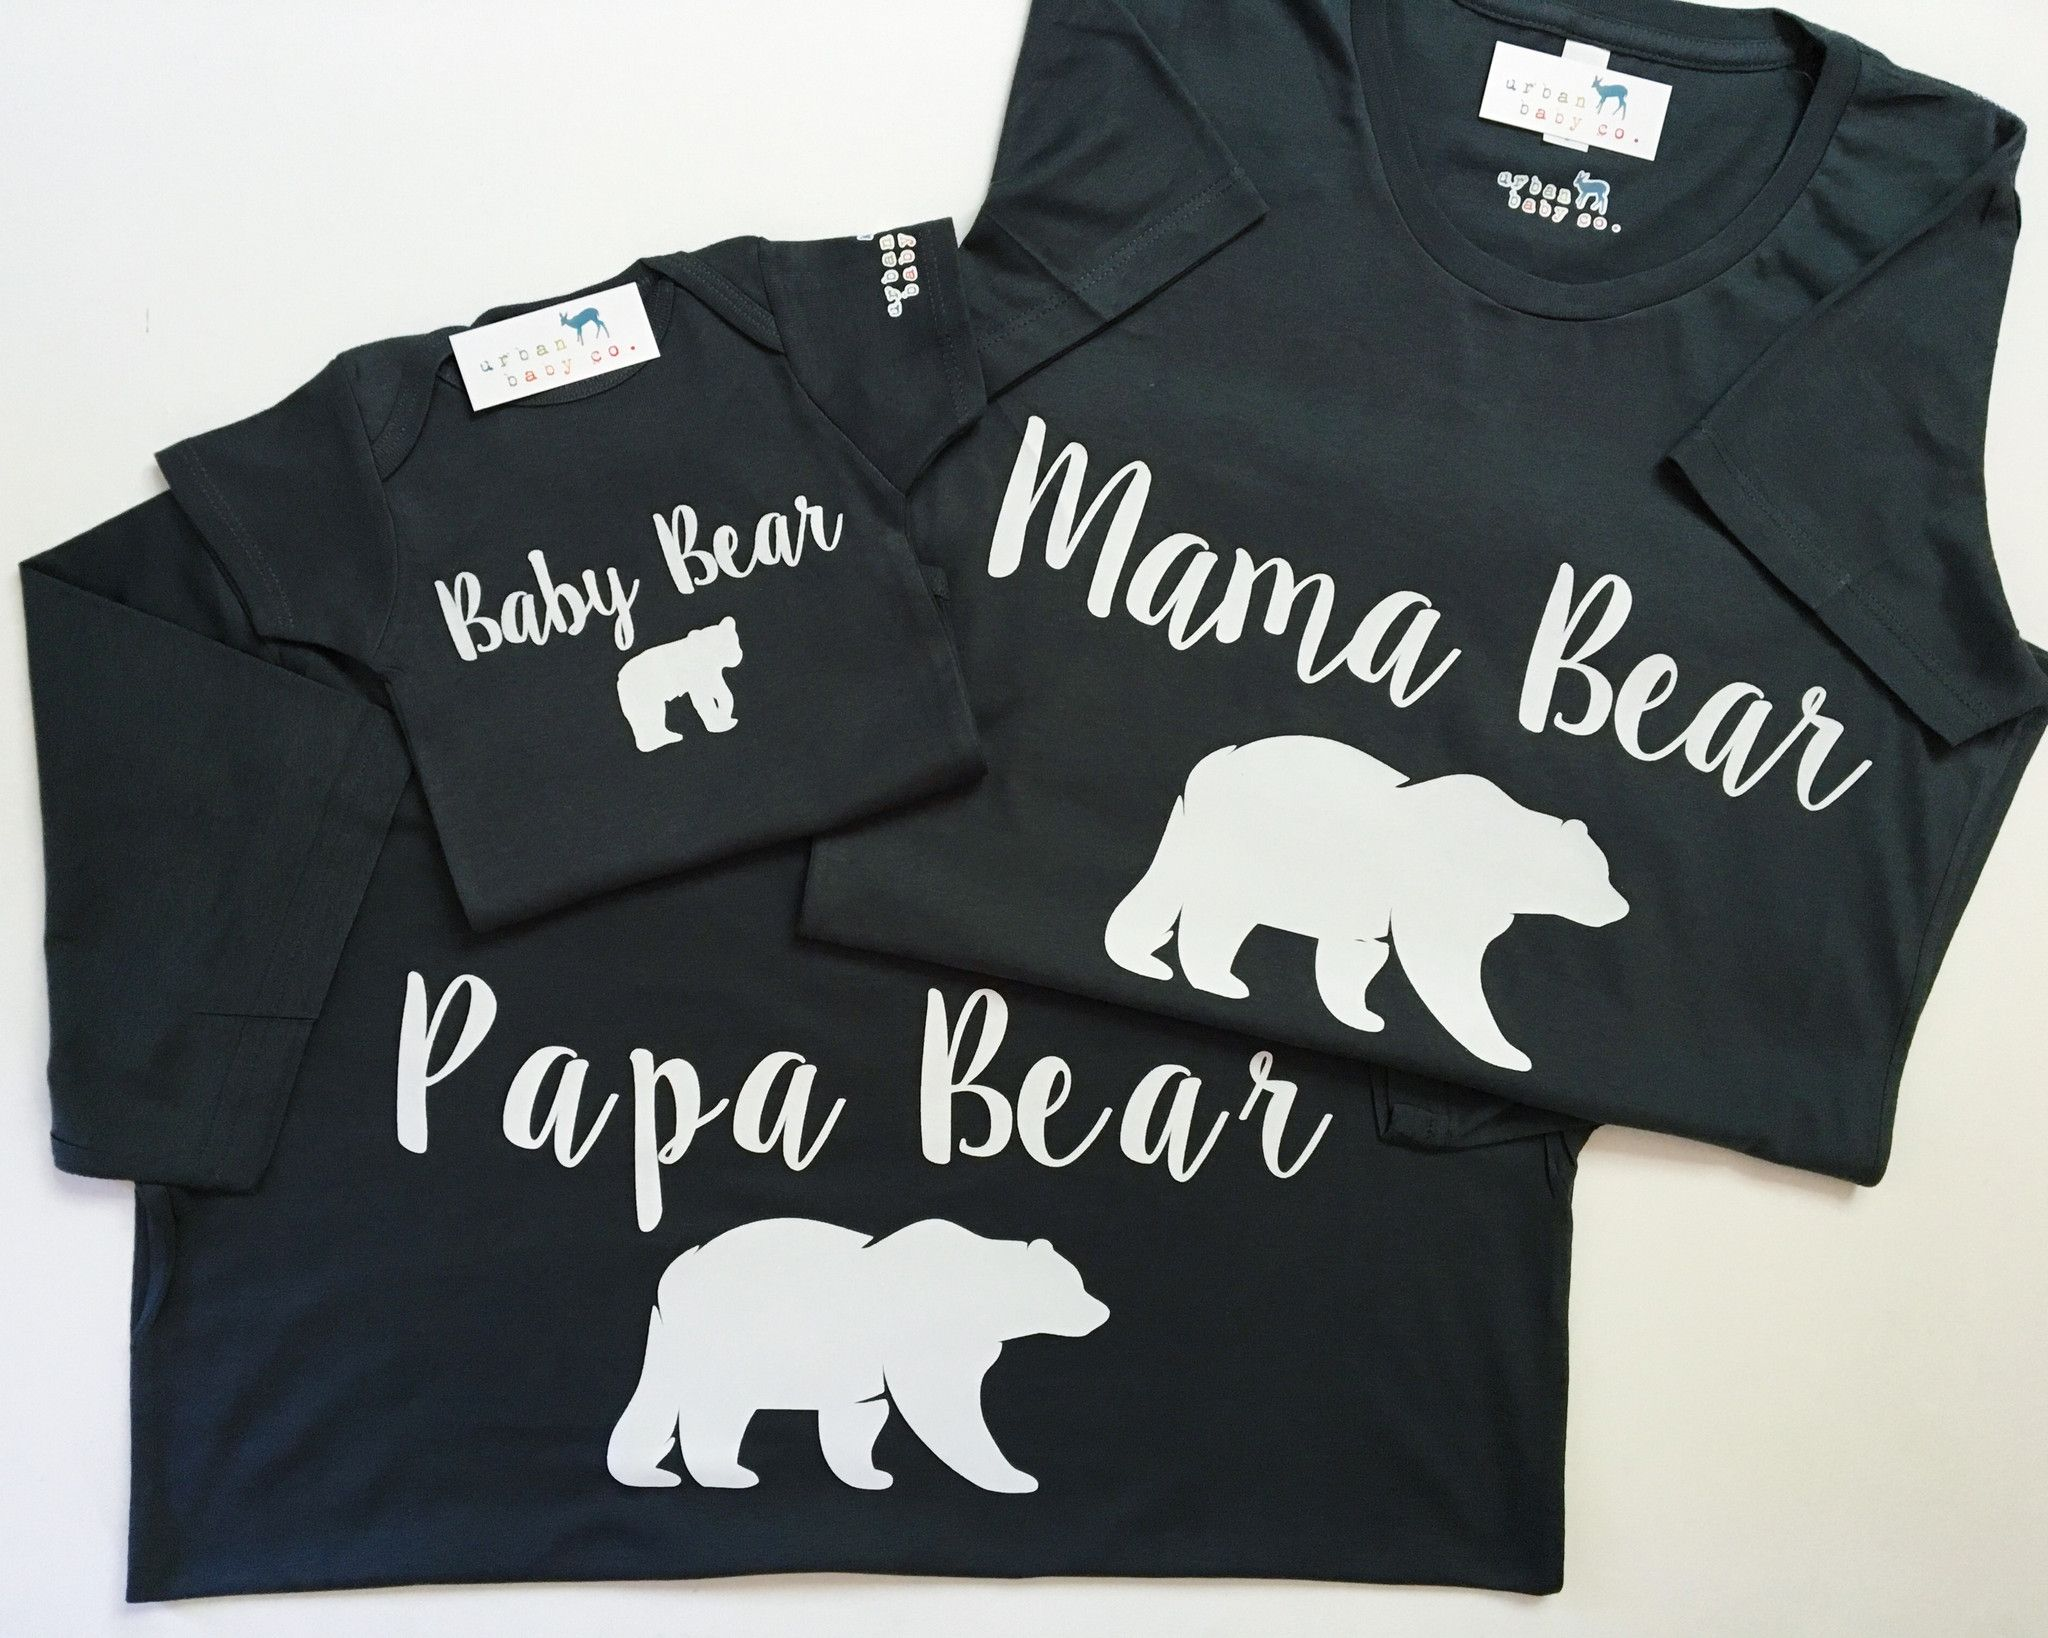 b3123c4b3f0 Family Bear Shirts